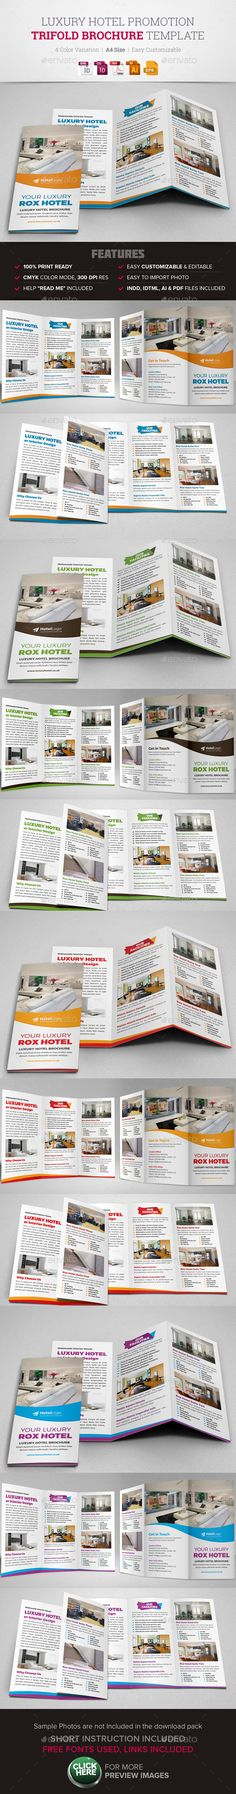 Company Profile Brochure Design V  Company Profile And Brochures